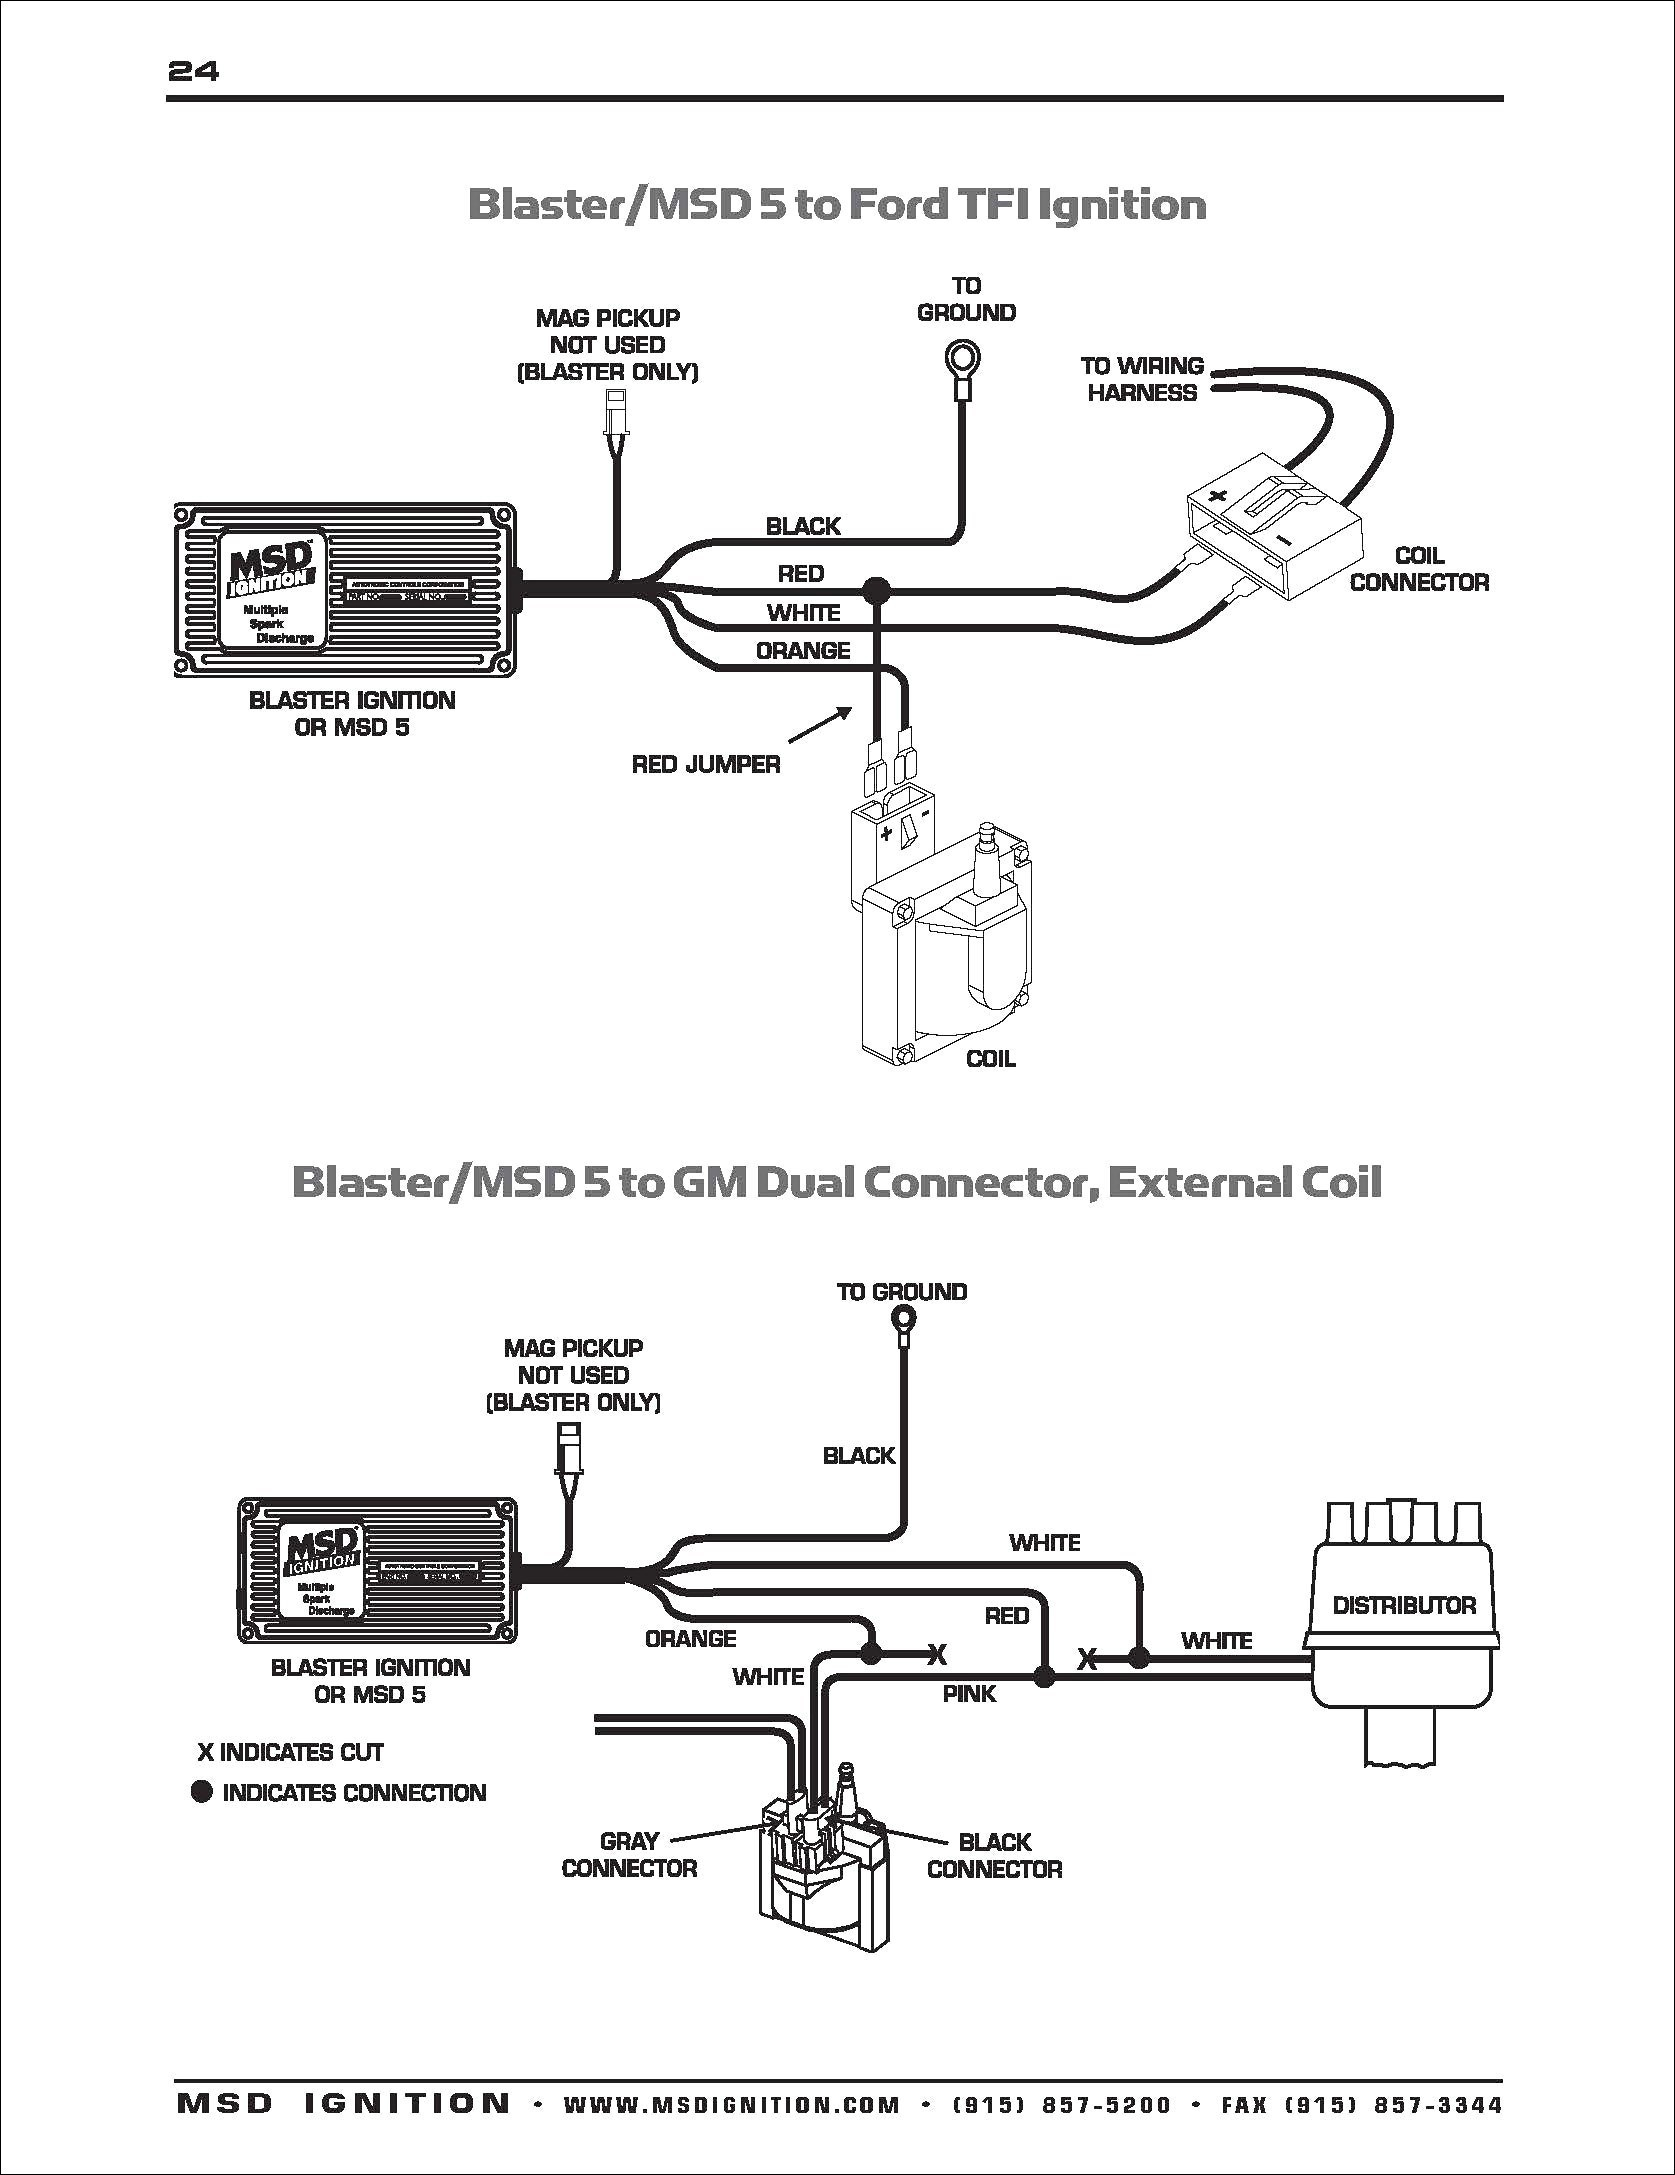 12 Volt Ignition Wiring Diagram Gm